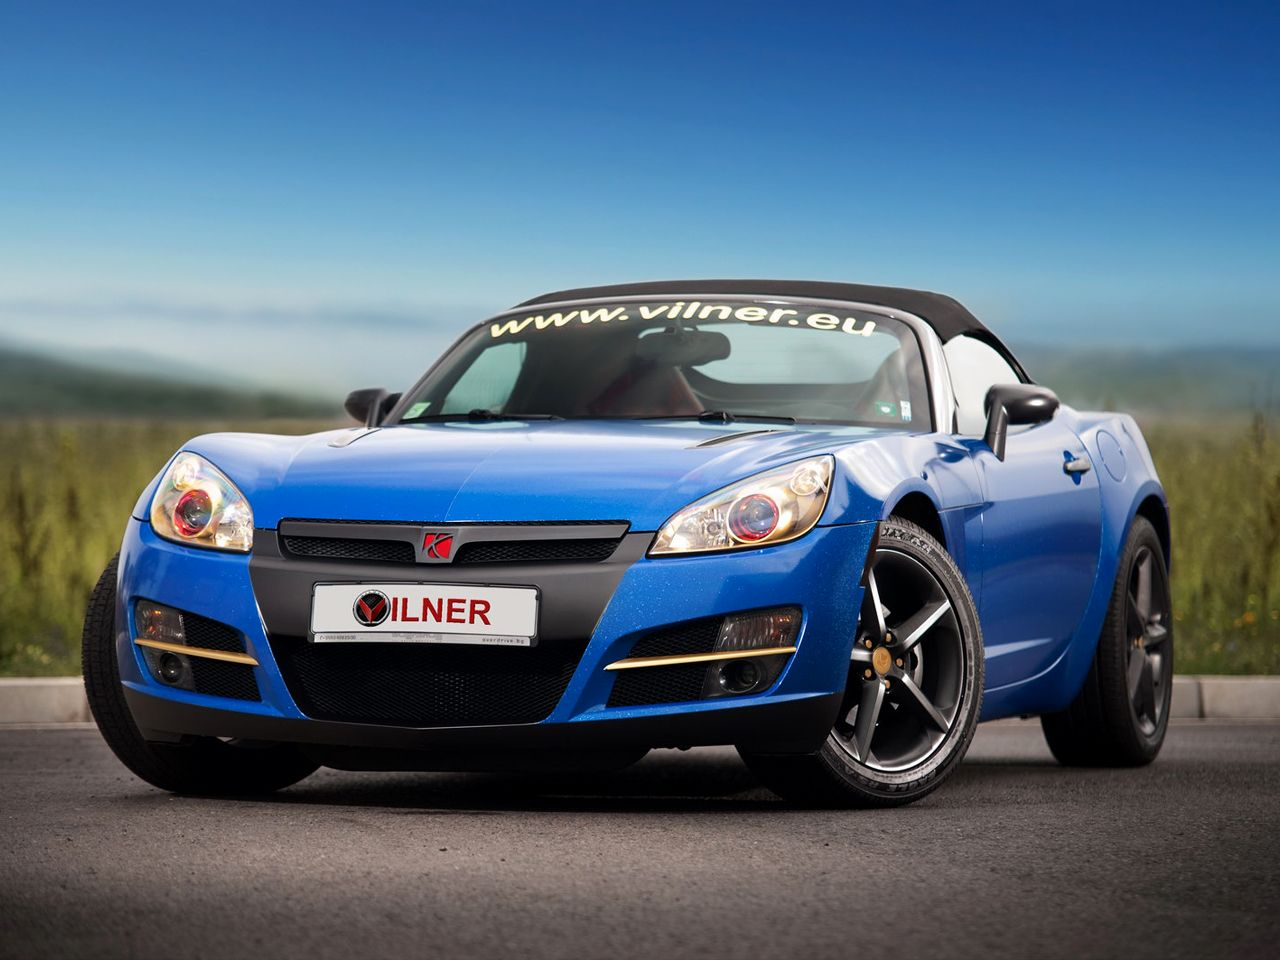 Captivating Saturn Sky | Vilner Saturn Sky U00272011u2013н.в.